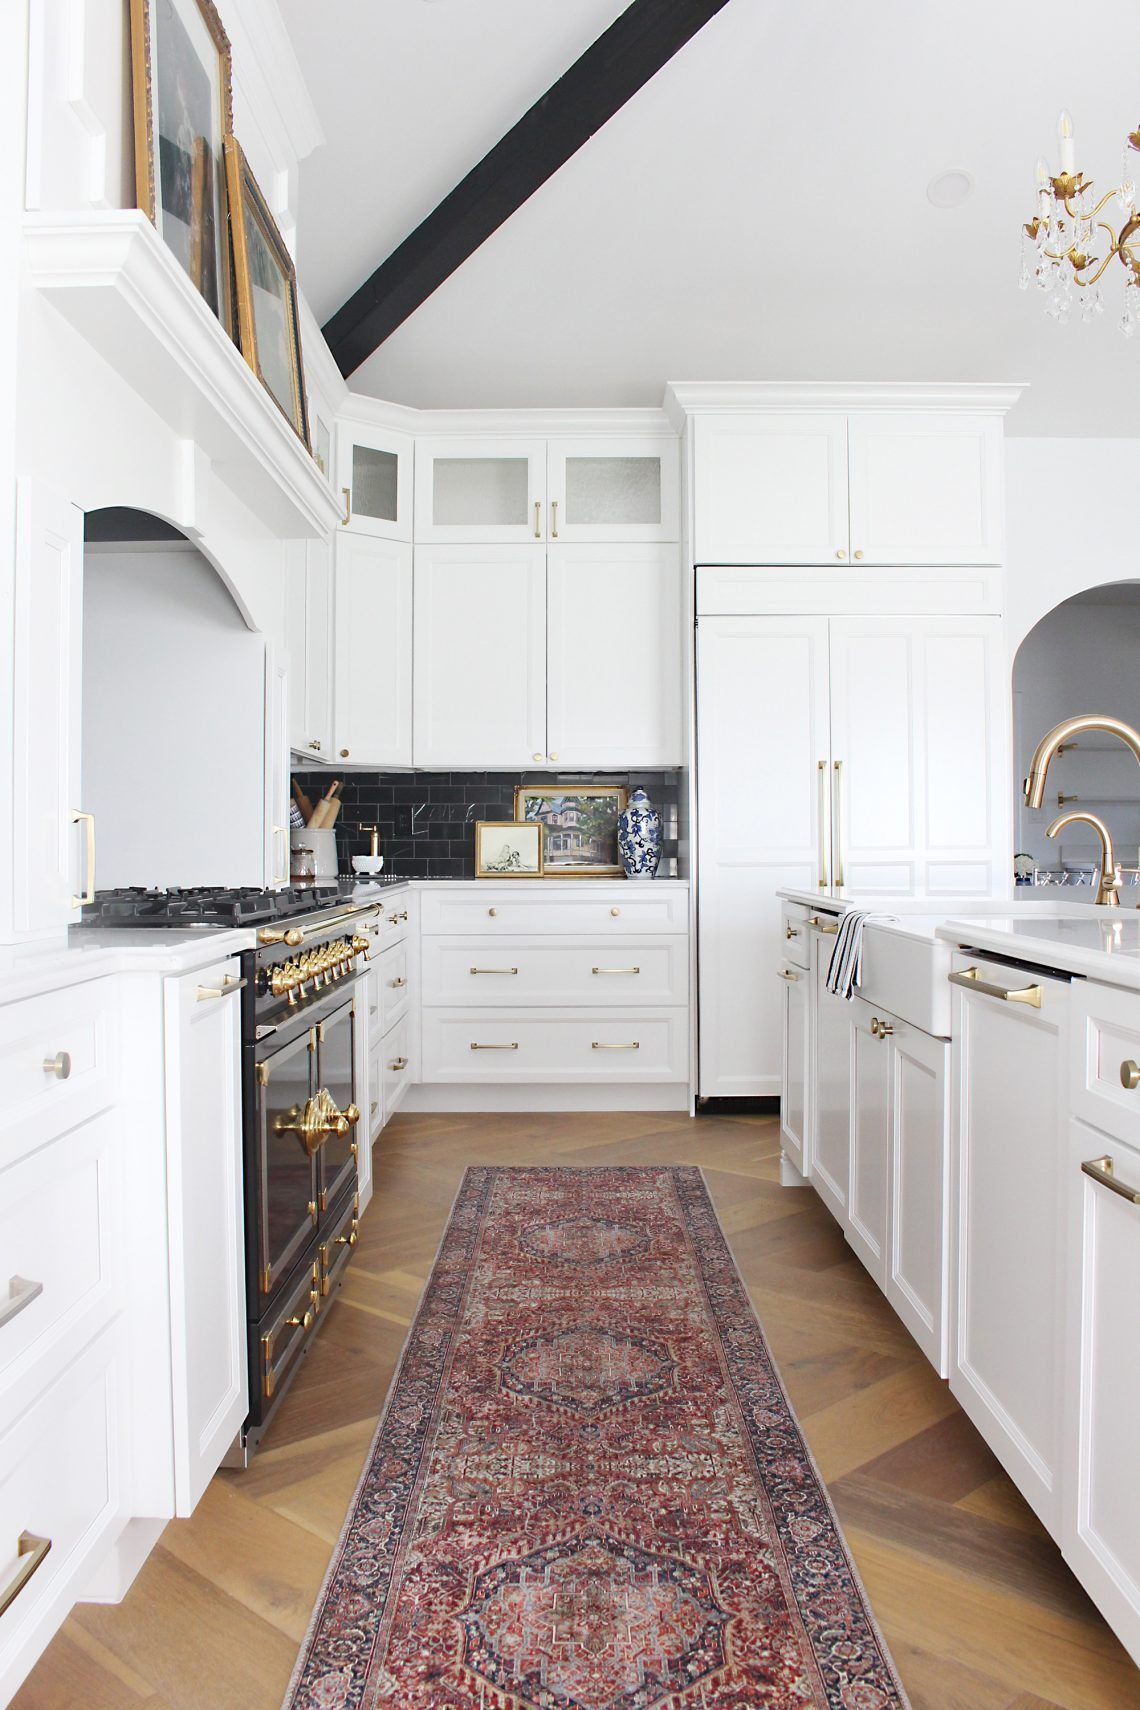 mallory s classic colonial kitchen reveal interior house colors cheap home decor home decor on kitchen interior classic id=55466